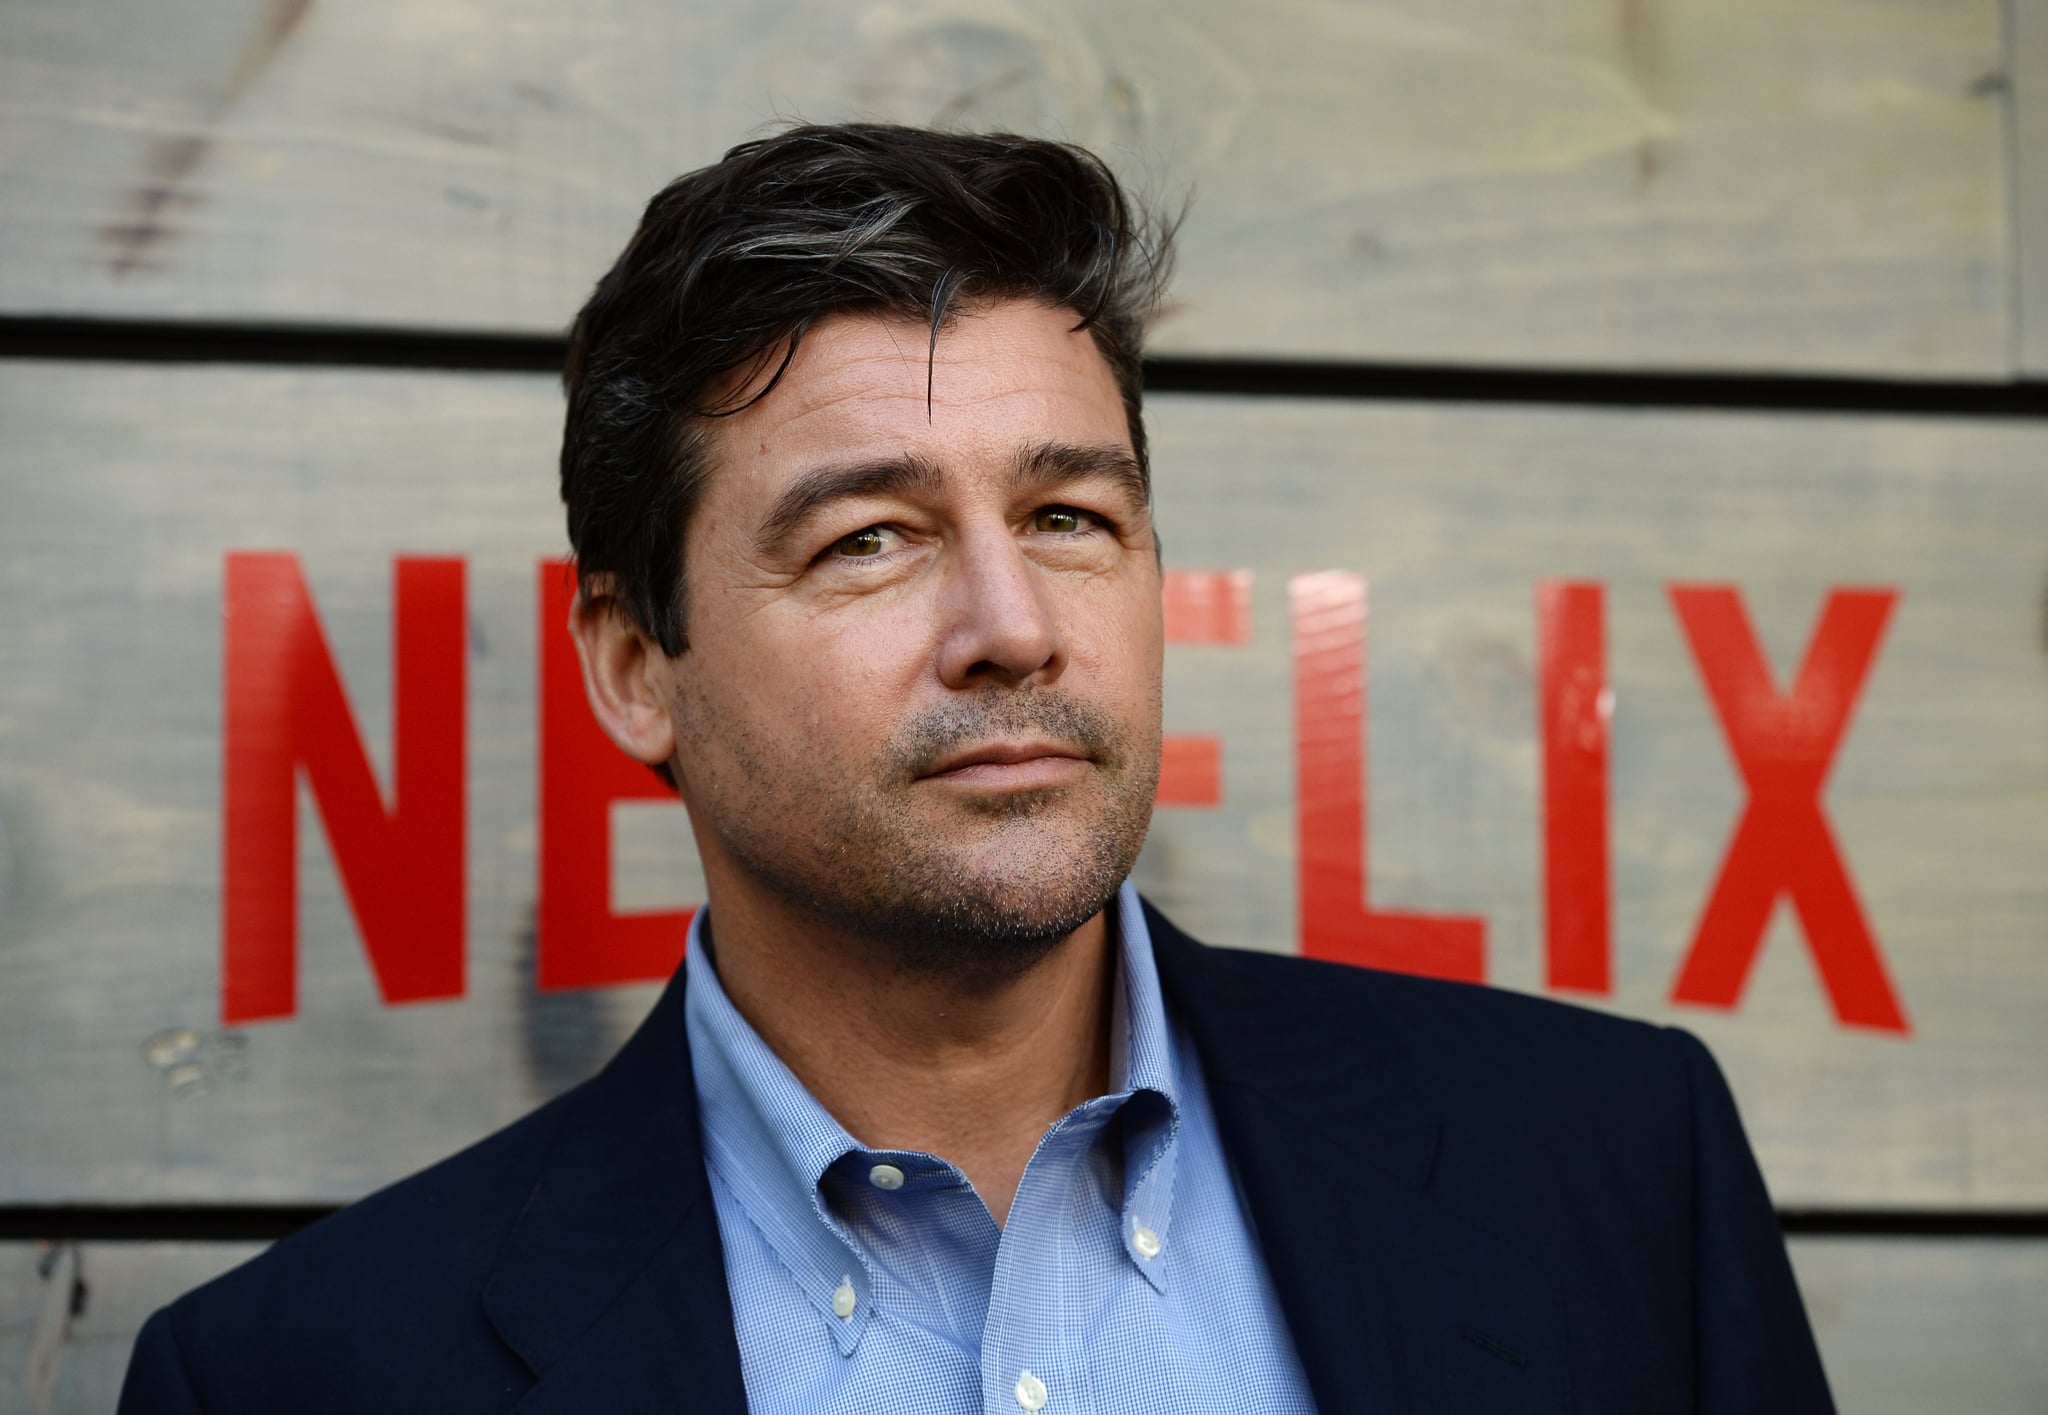 LOS ANGELES, CA - MAY 24:  Actor Kyle Chandler arrives at the premiere of Netflix's